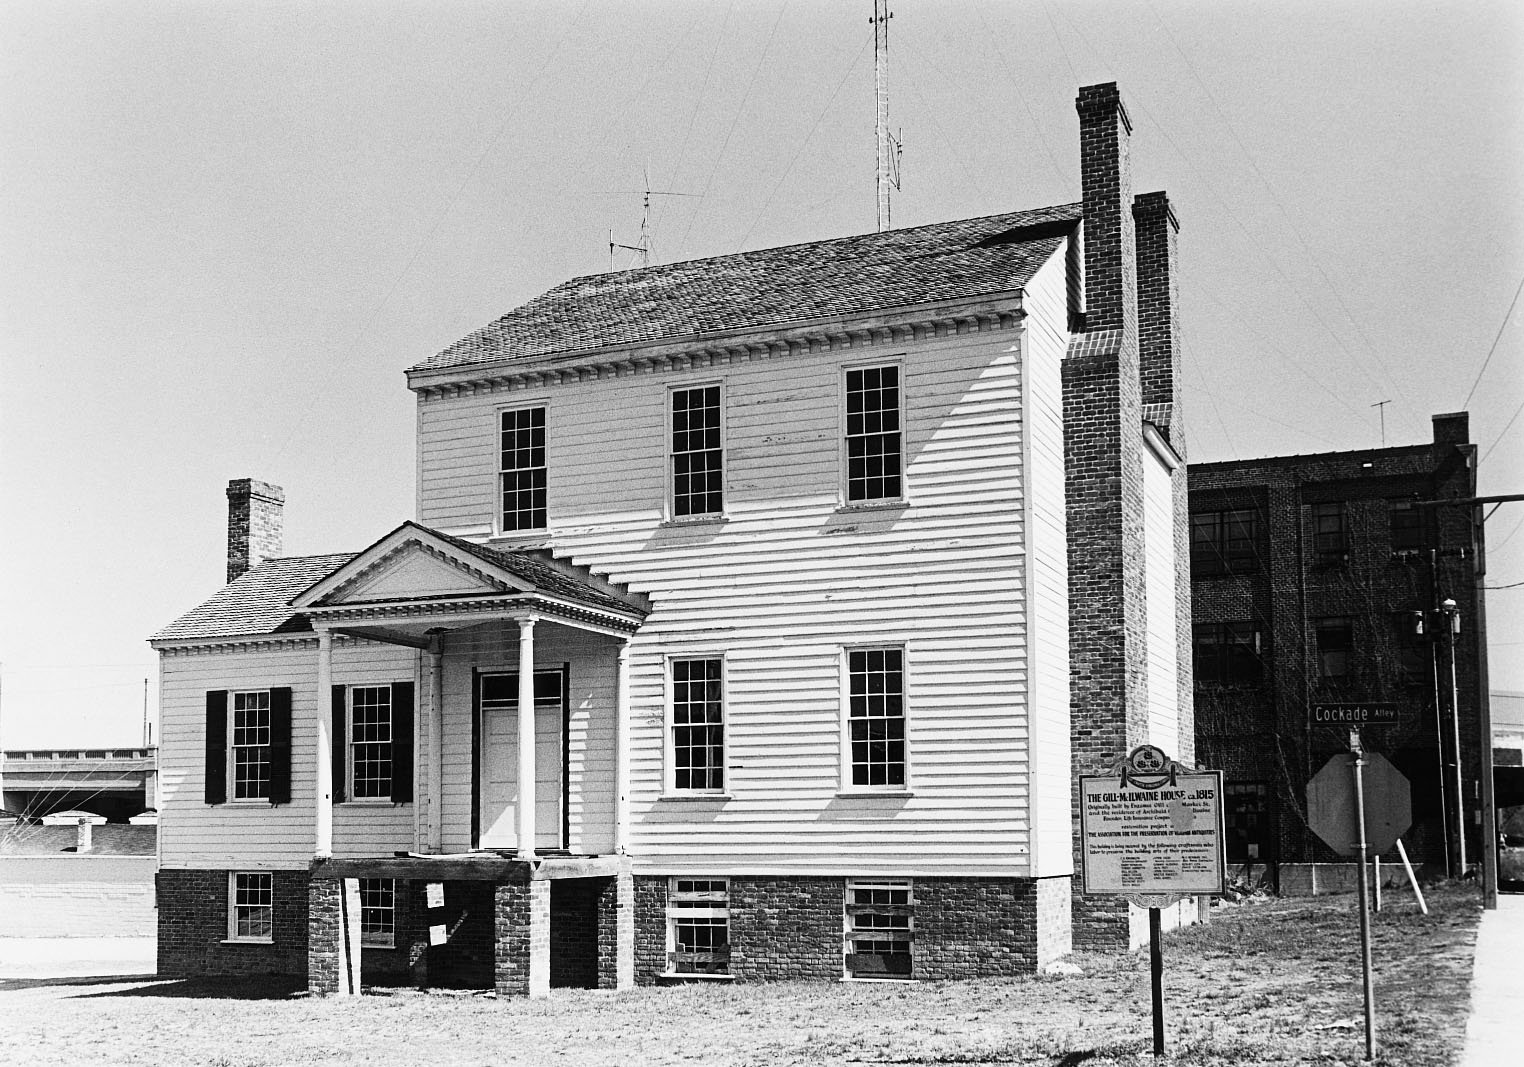 McIlwaine House at its prior location, before move to Market Square in the early 1970s